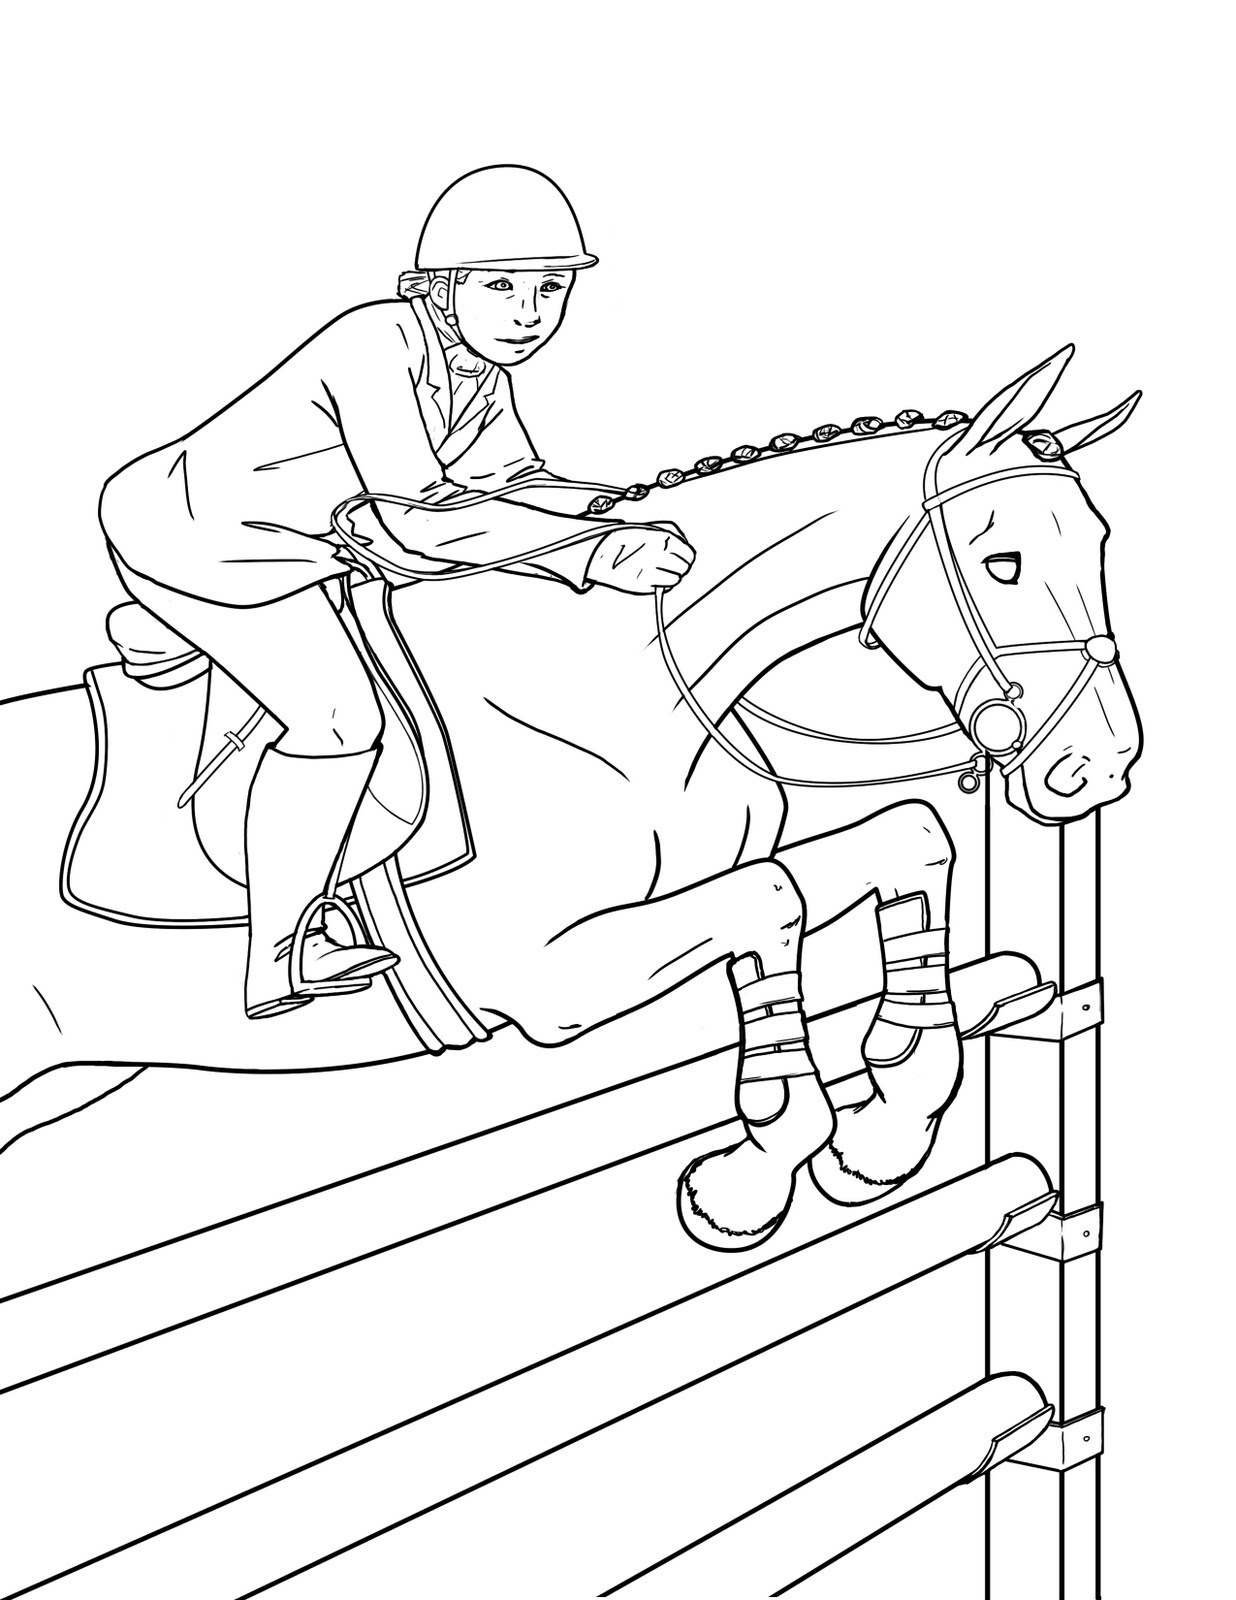 horse jumping coloring pages - photo #16